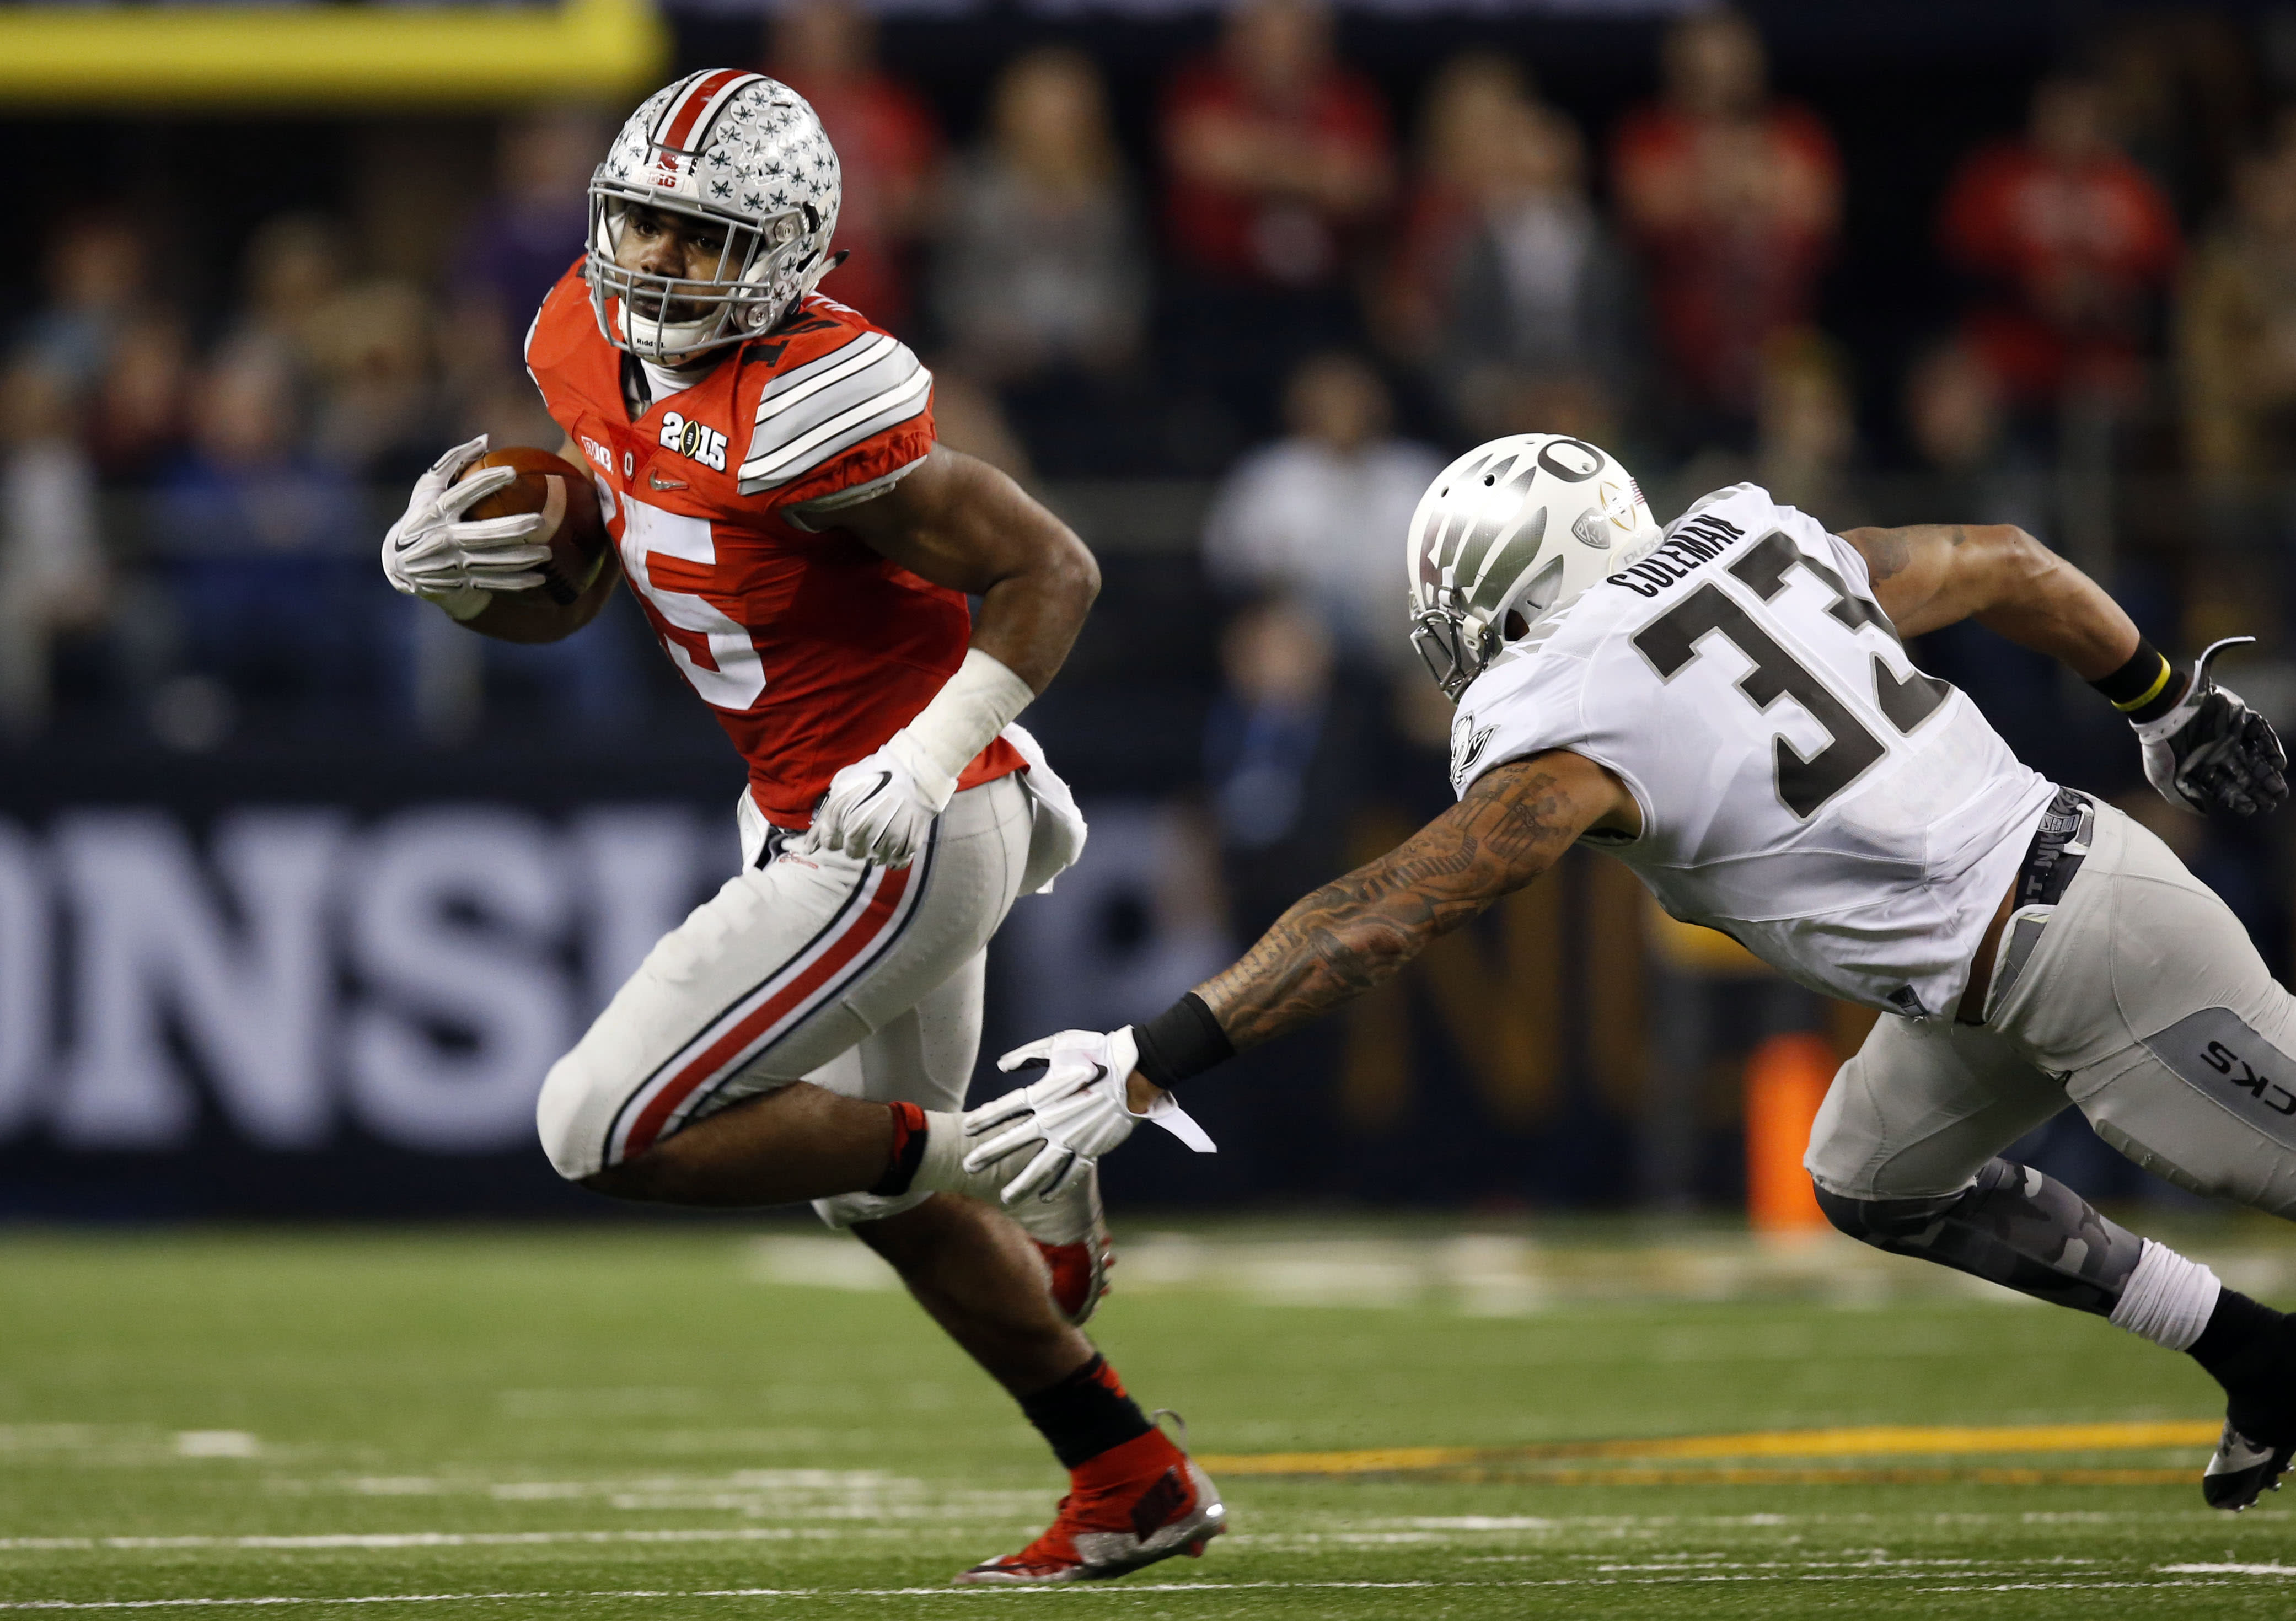 Early Heisman odds list four Ohio State players among top 13